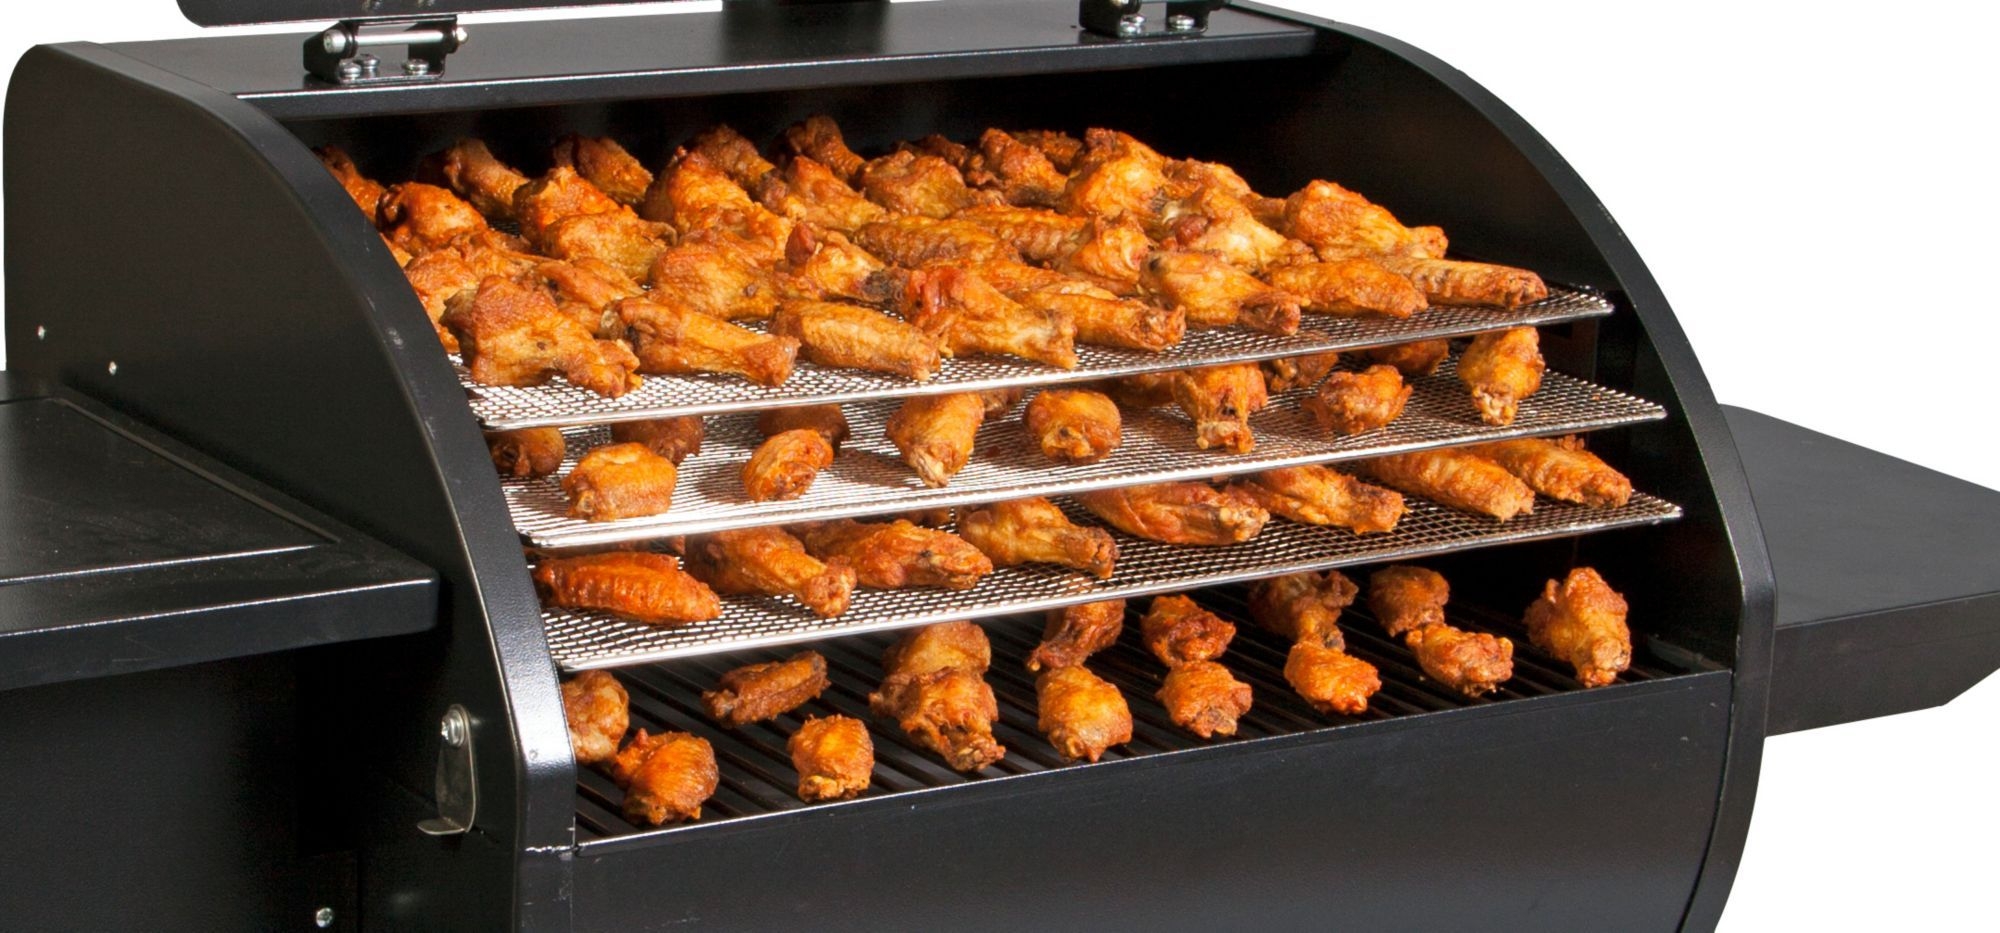 Camp Chef Pellet Grill And Smoker Jerky Rack Camp Chef Patio Kitchen Grilling